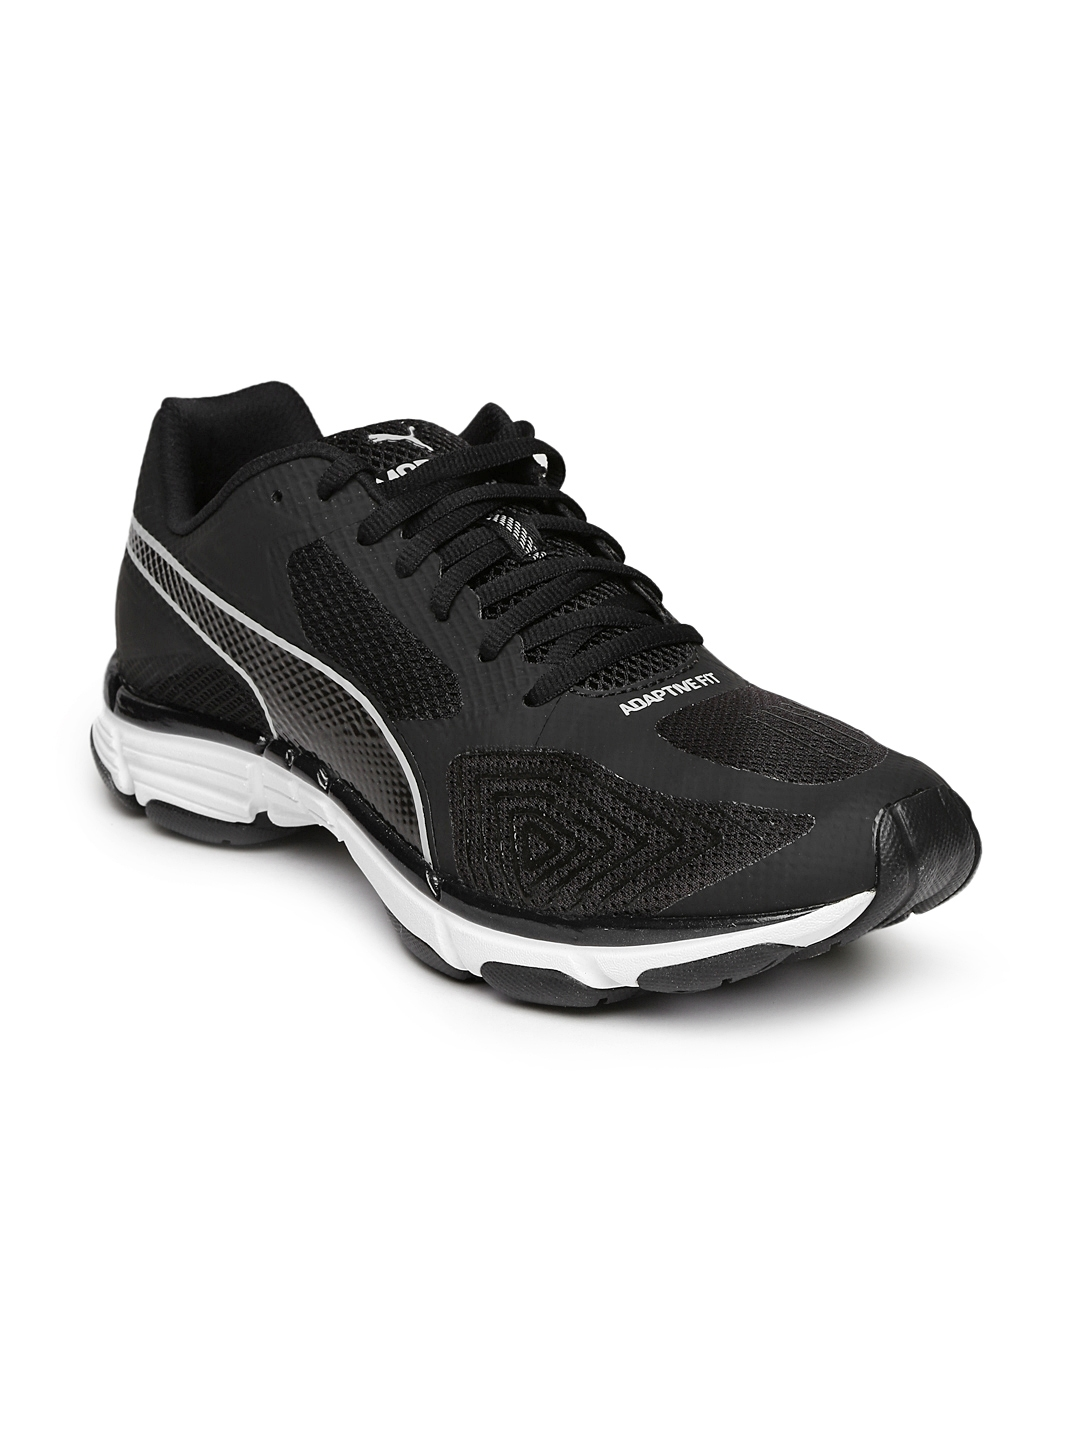 Buy PUMA Men Black Mobium Ride V2 Running Shoes - Sports Shoes for ... c86a9b47a